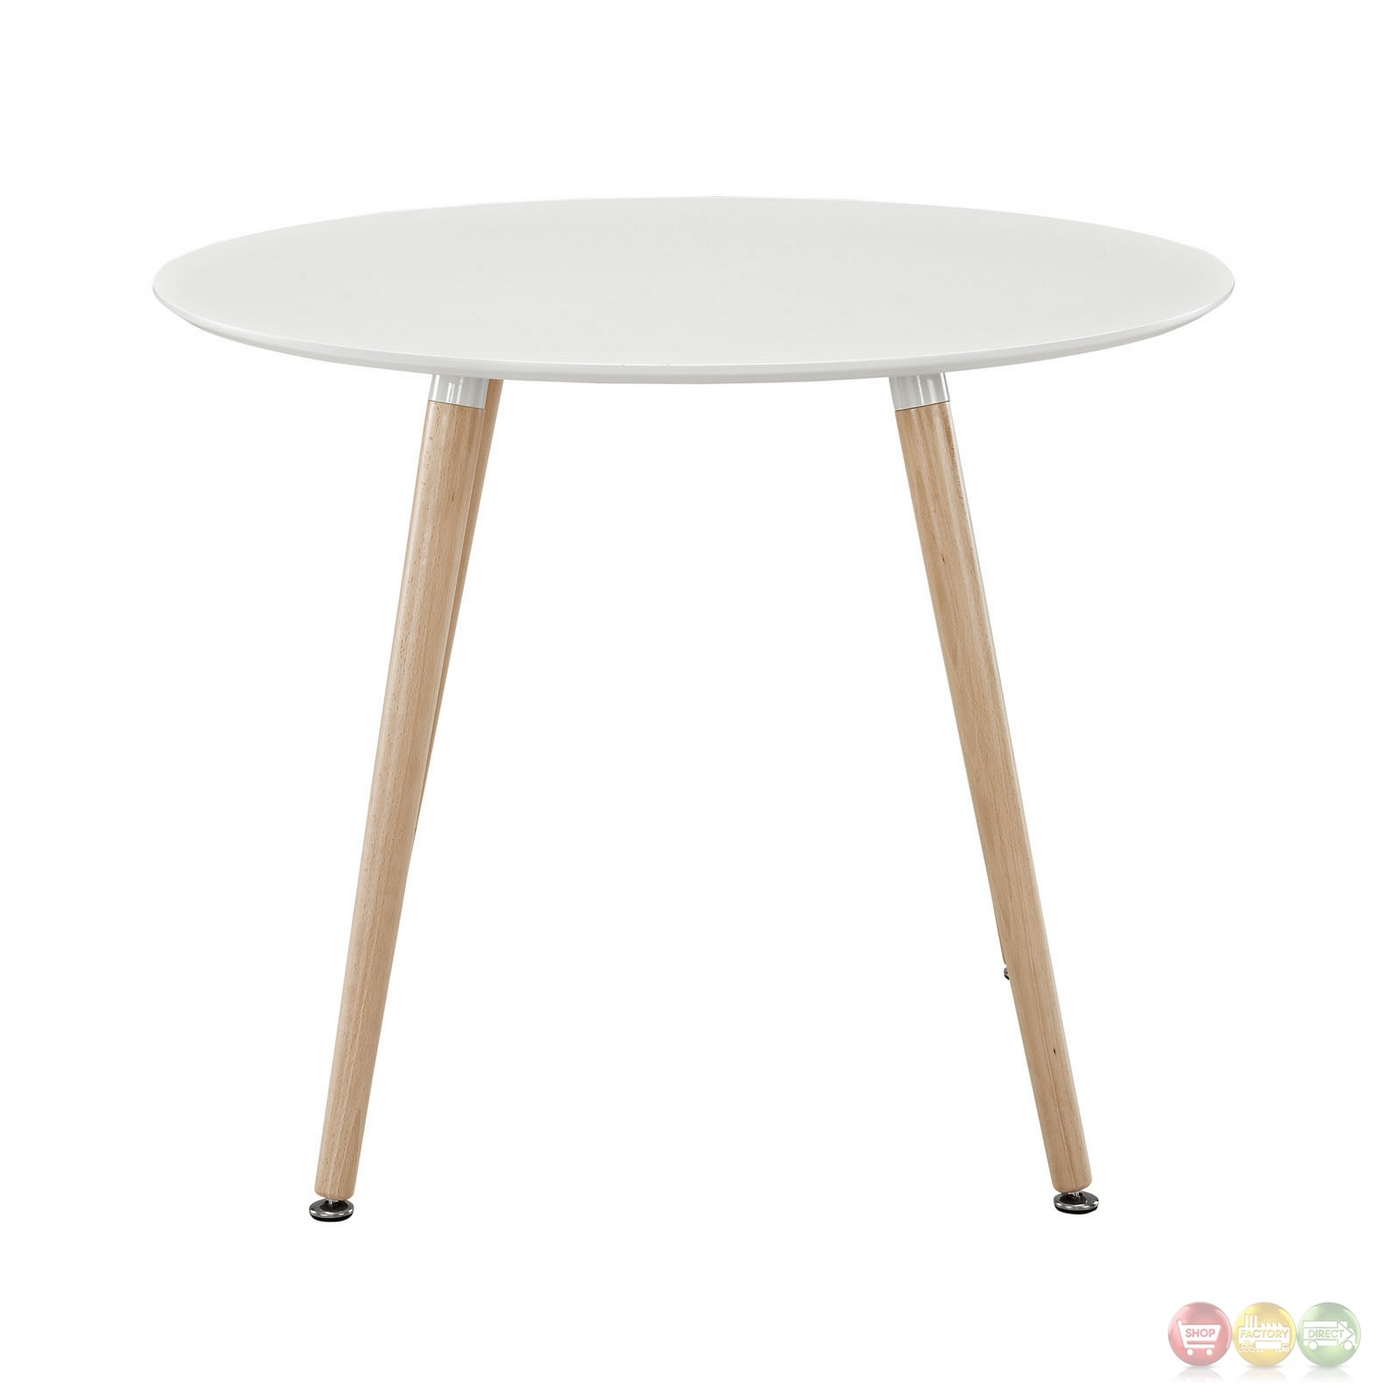 Track contemporary 40 round wooden dining table white for Contemporary round dining table